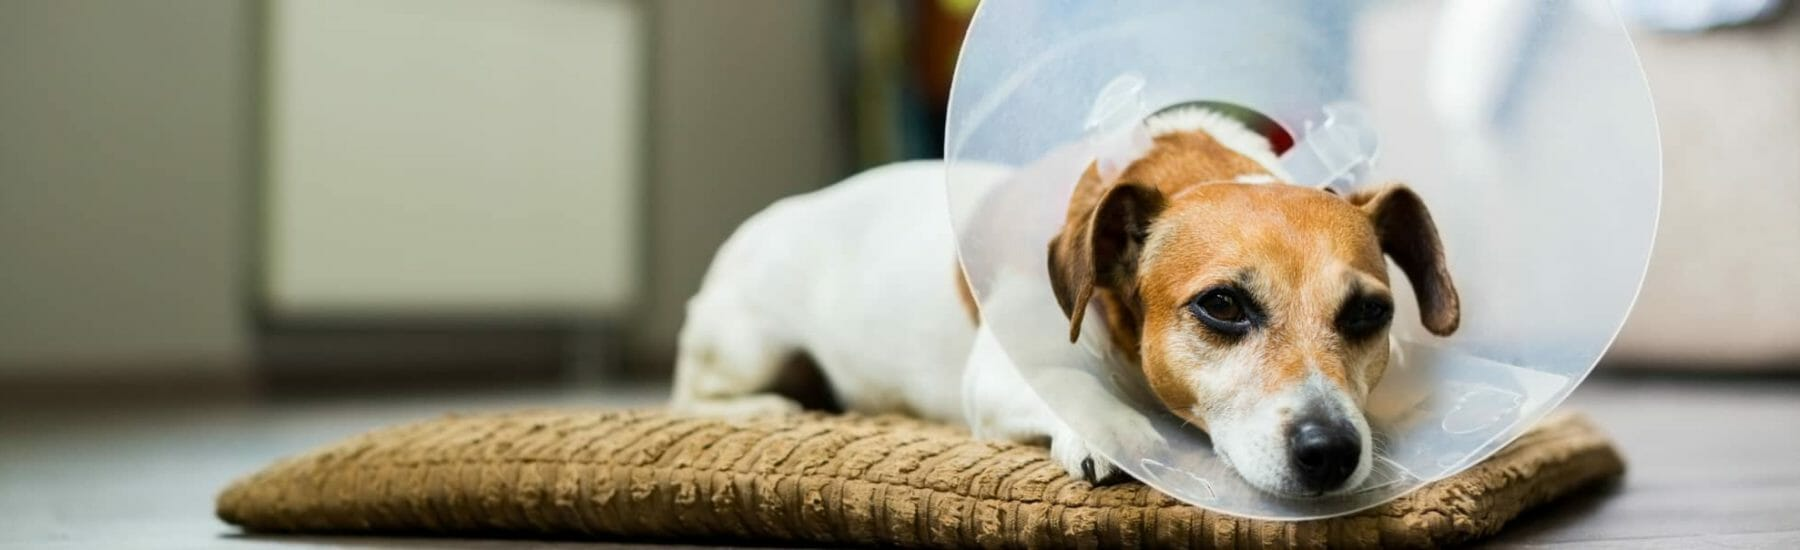 Small dog with cone on head laying on bed